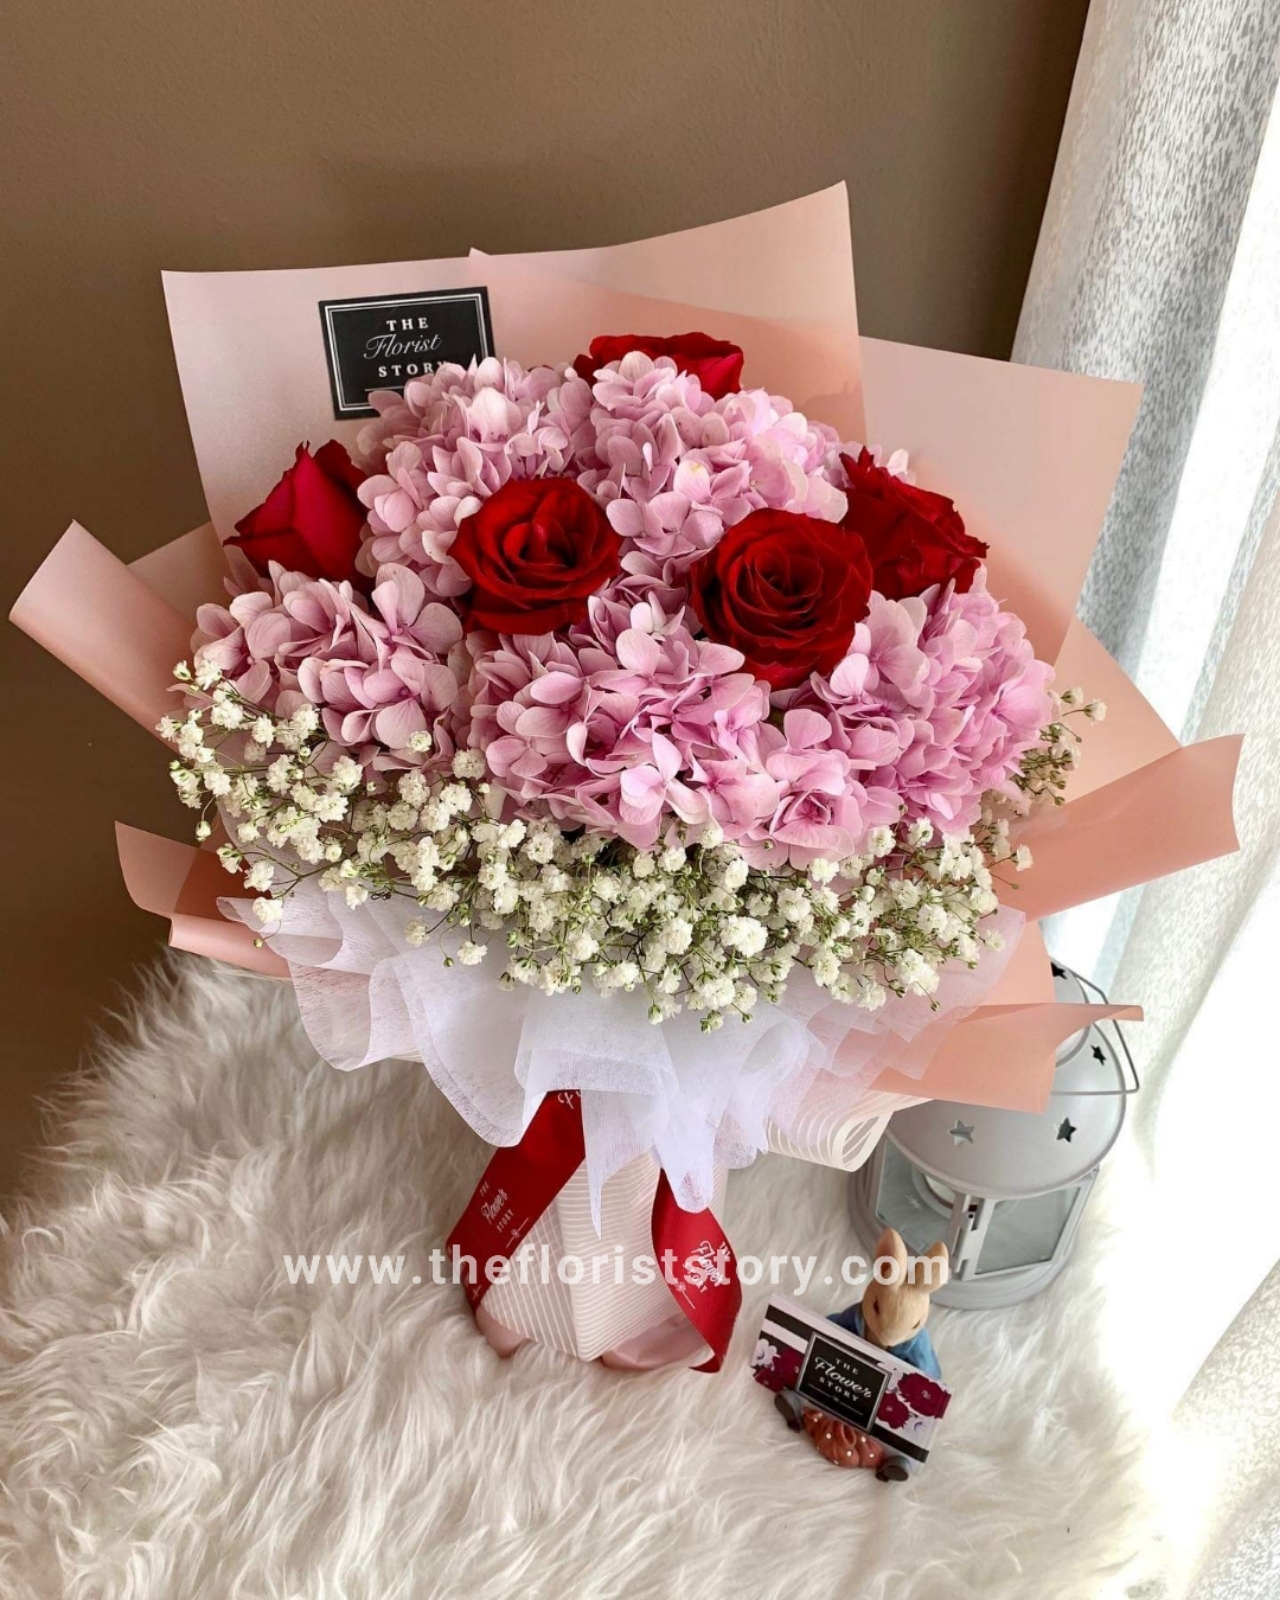 Pink Hydrangea With Red Roses Bouquet The Florist Story Florist Johor Gift Shop Flower Cake Delivery